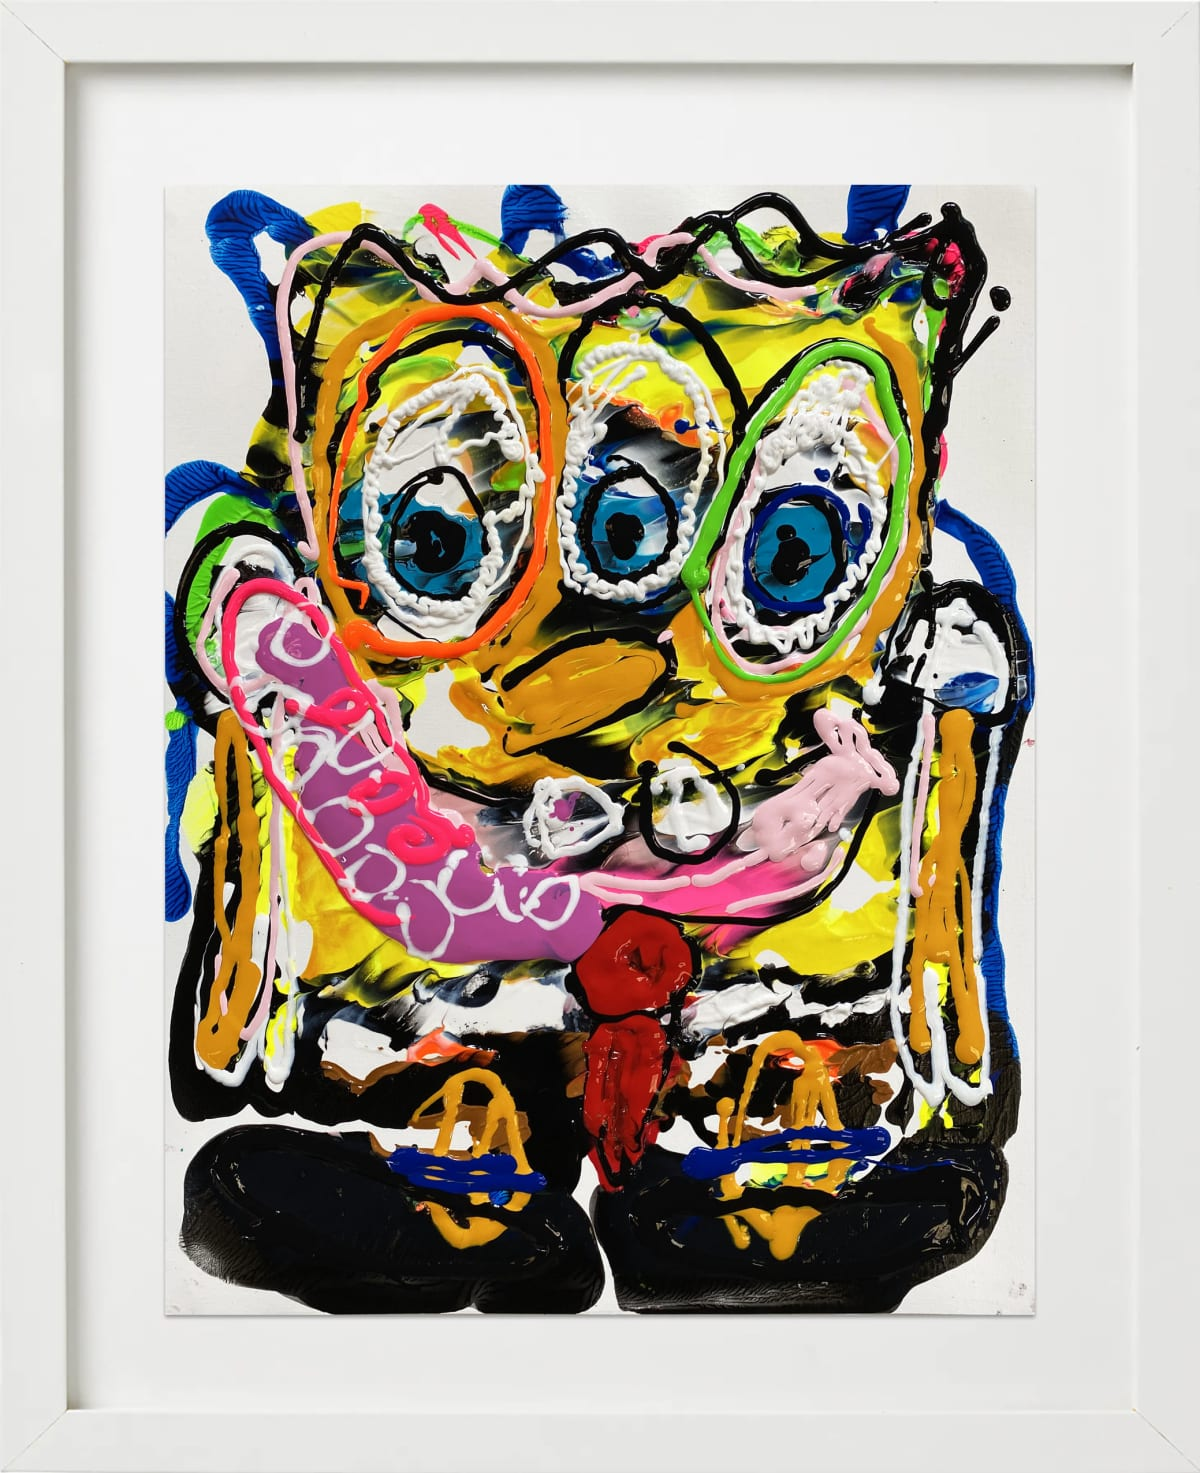 Help Wanted No 1 by John Paul Fauves